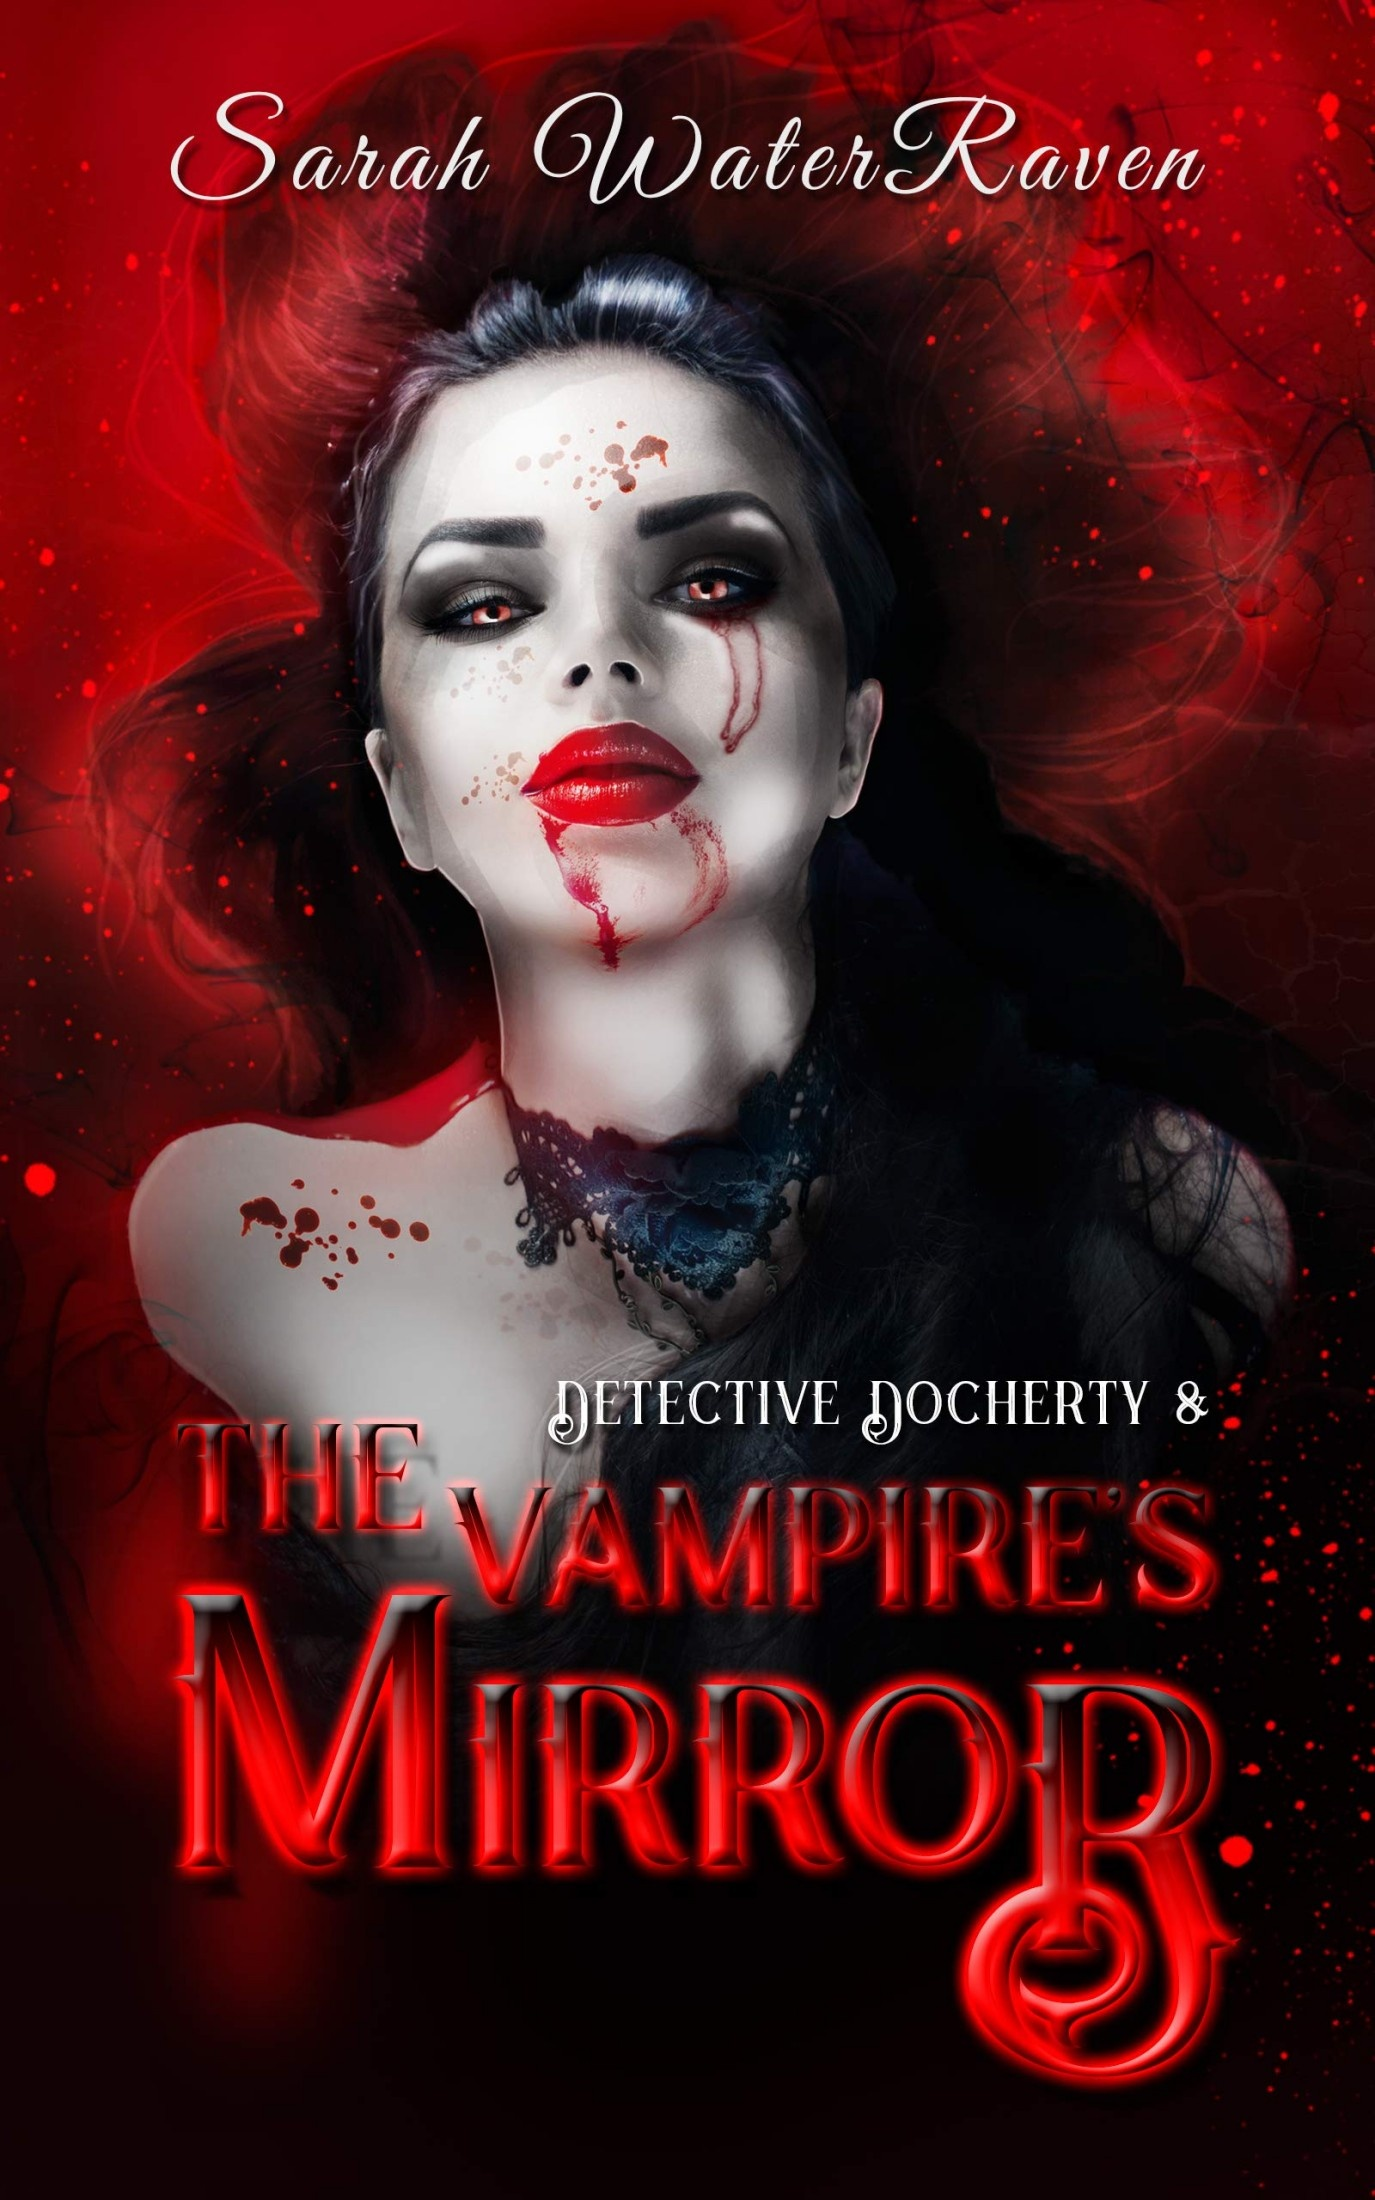 Book cover of Detective Docherty and the vampire's mirror by Sarah WaterRaven